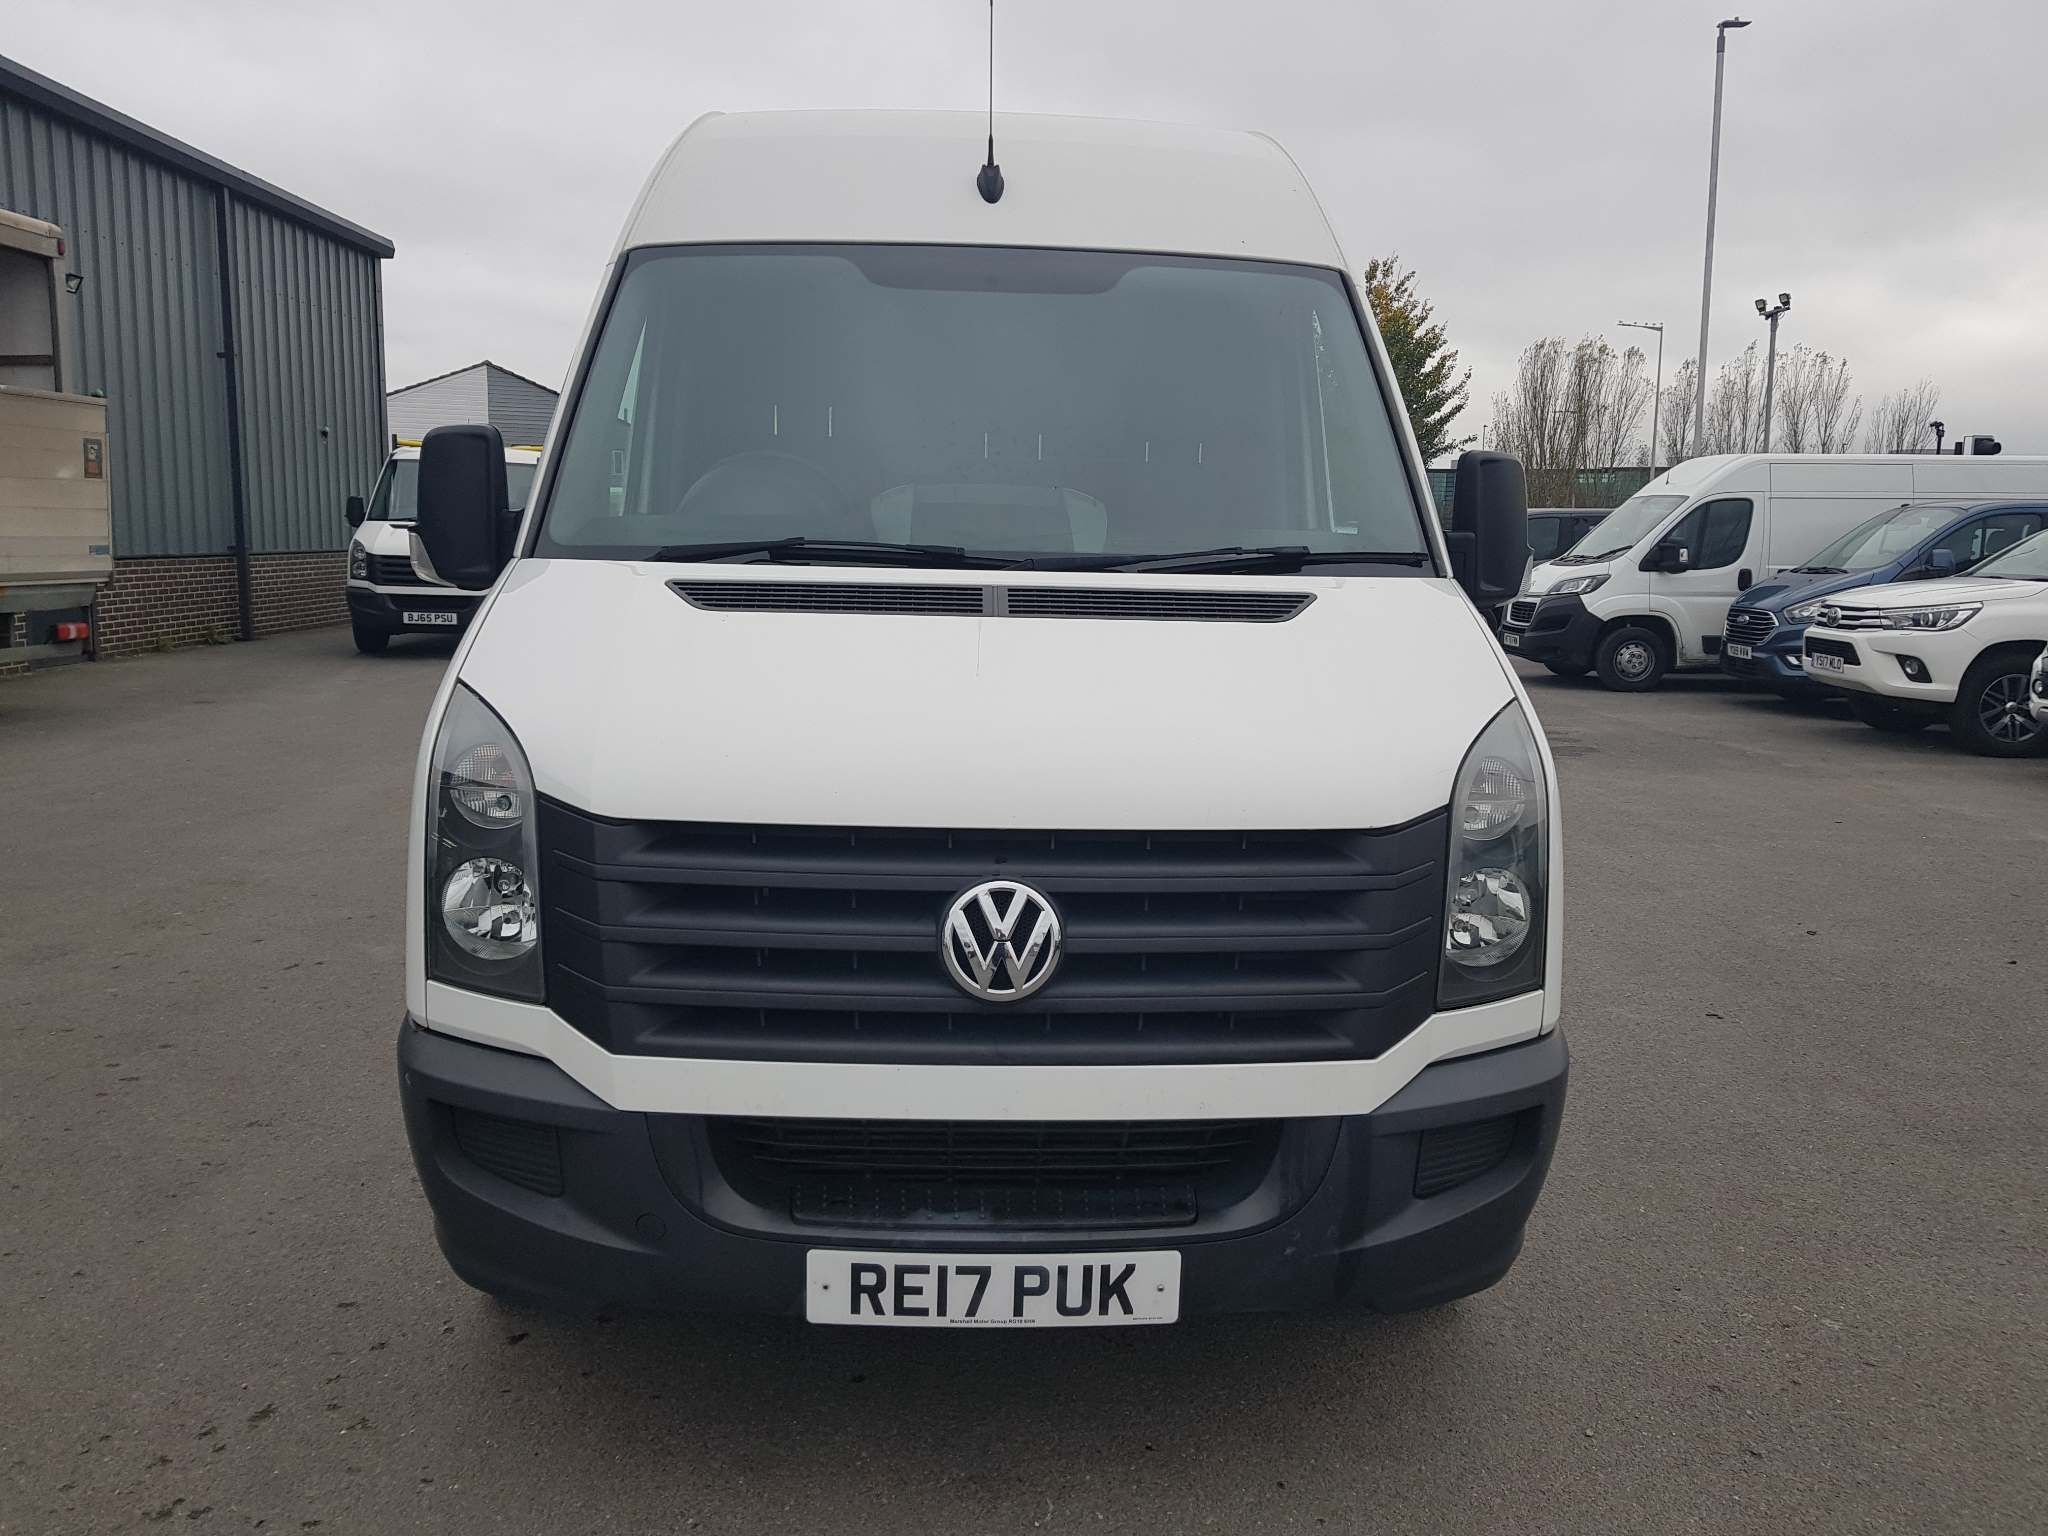 VolkswagenCrafter 2.0 TDICR35 High Roof For Sale